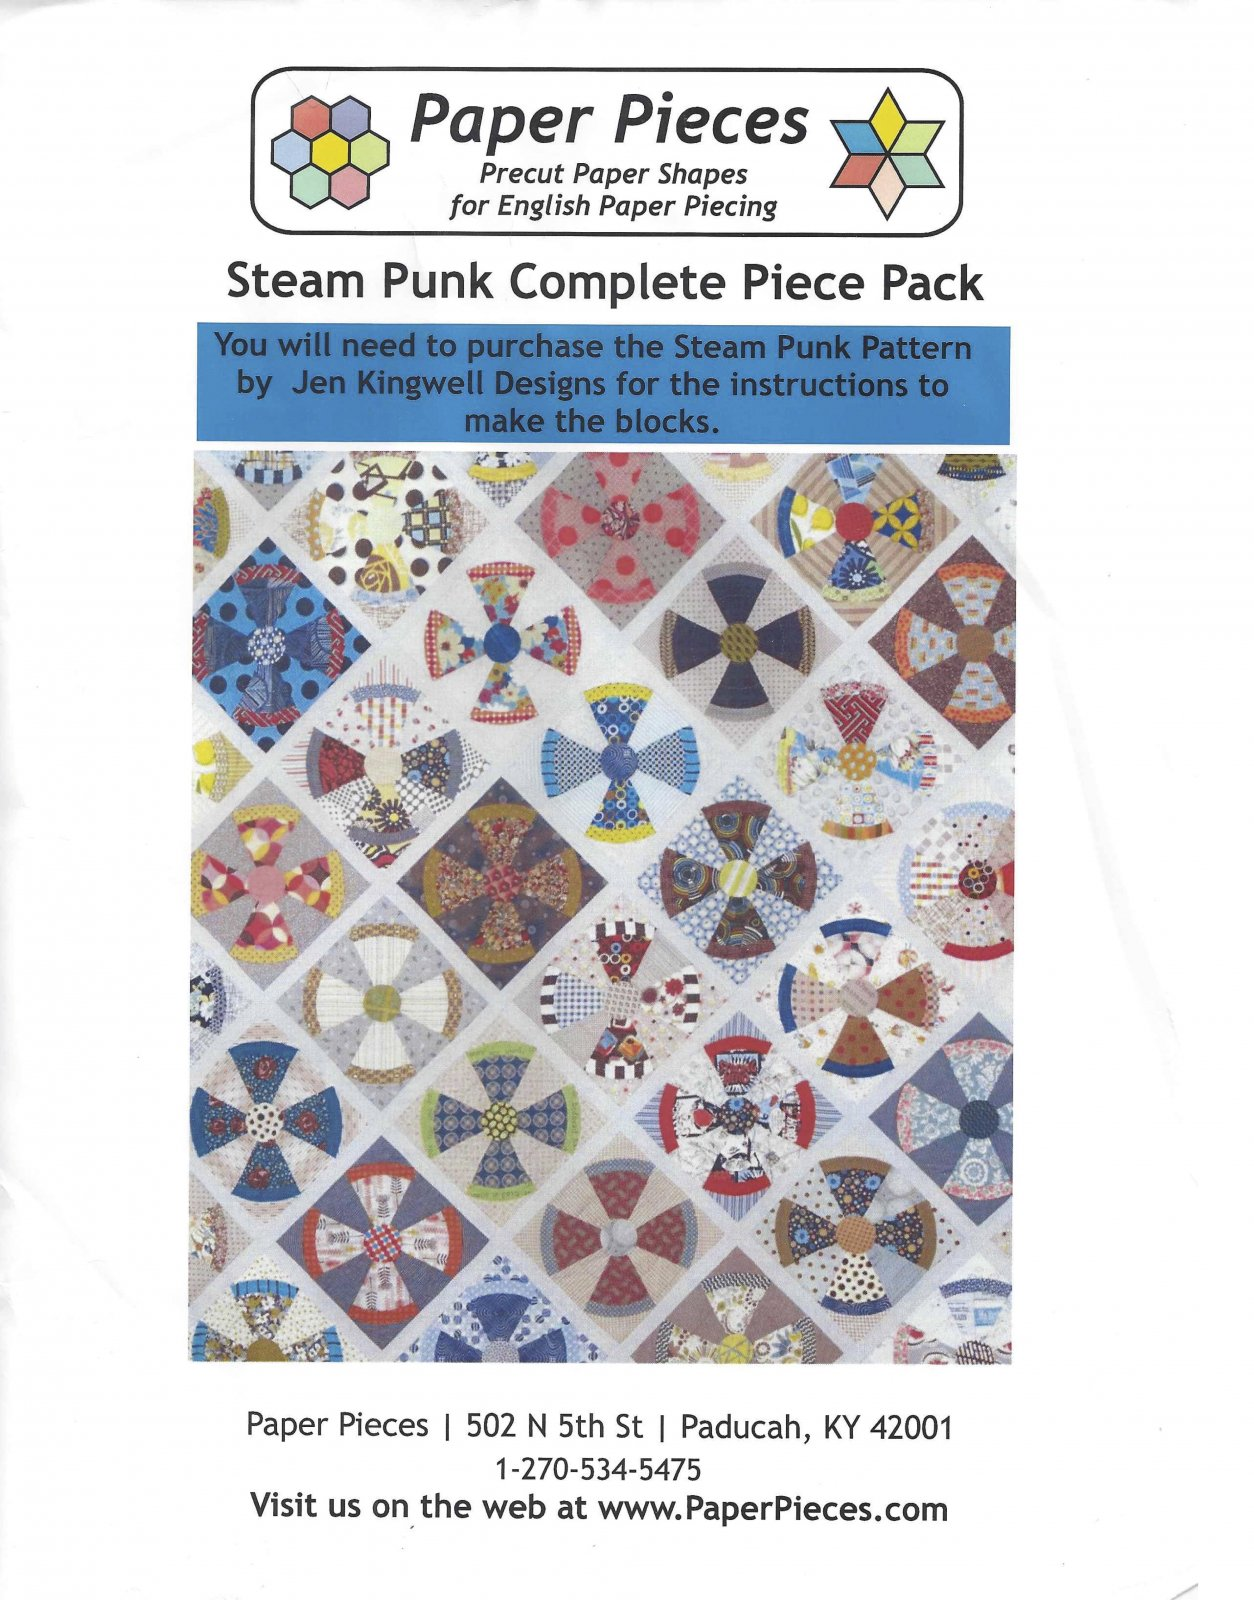 Steam Punk By Jen Kingwell - Paper Pieces - Complete Piece Pack - Includes Pattern